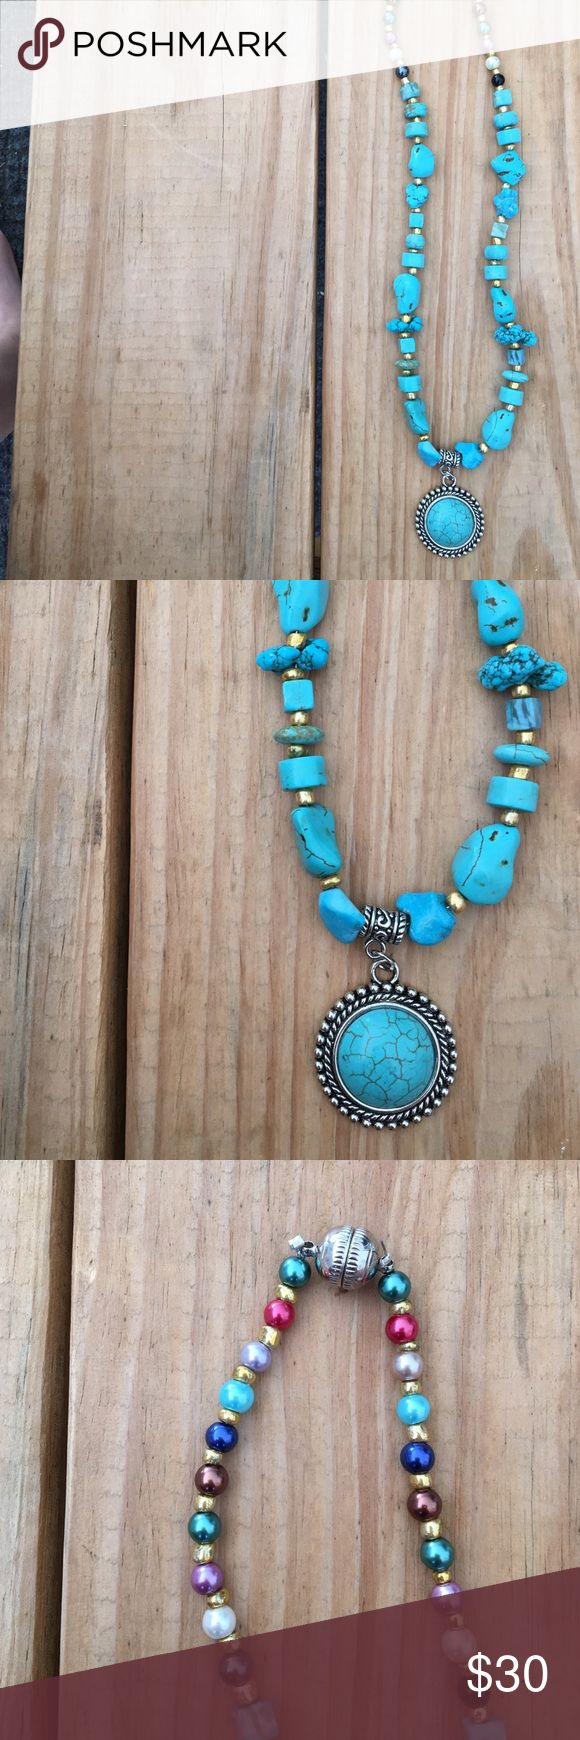 •Handmade• Turquoise Necklace✨ •handmade  •unique  •magnetic closure for easy take on/off  •all jewelry prices firm unless stated otherwise. •Offers to do not apply to jewelry.  •please ask any questions you may have thetrendykittenjewelry Jewelry